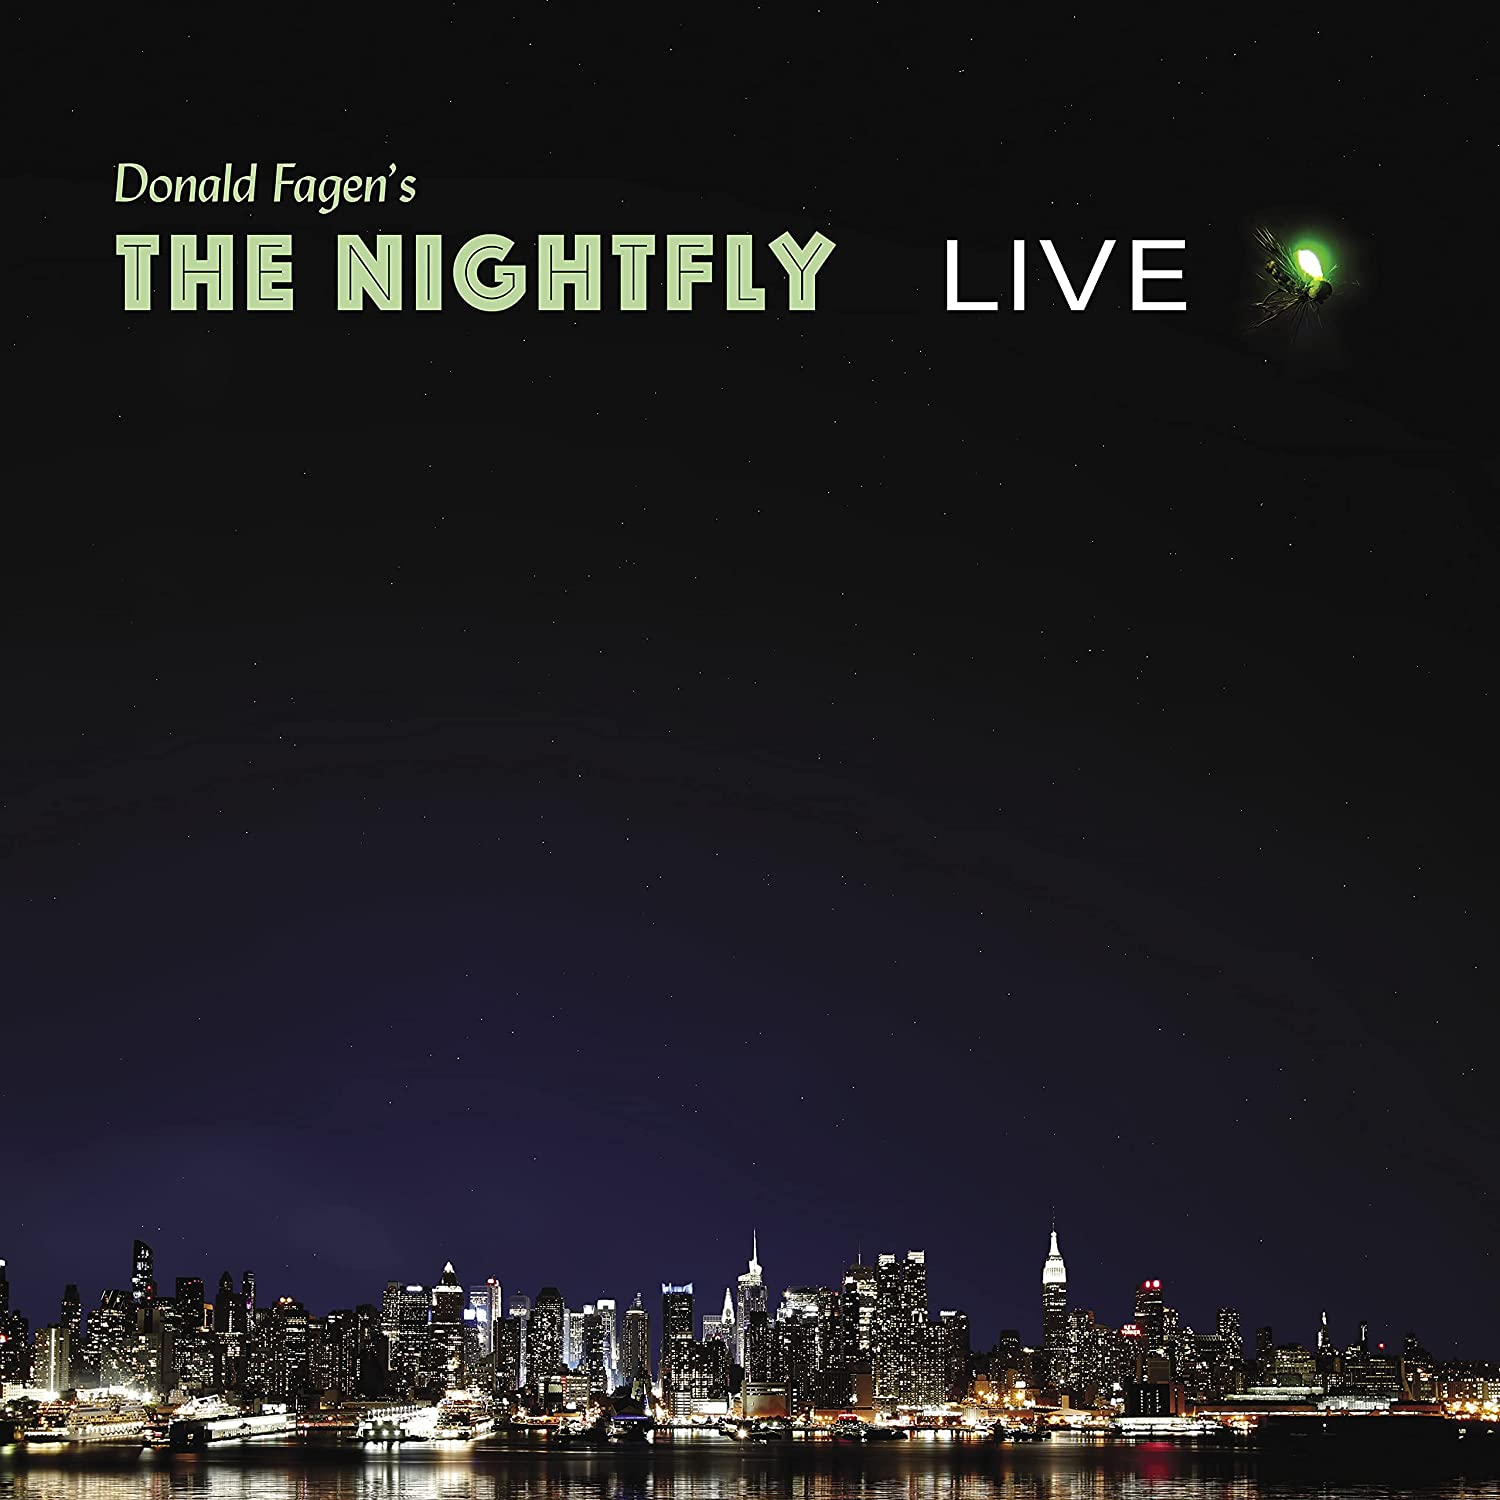 Donald Fagen / The Nightfly Live